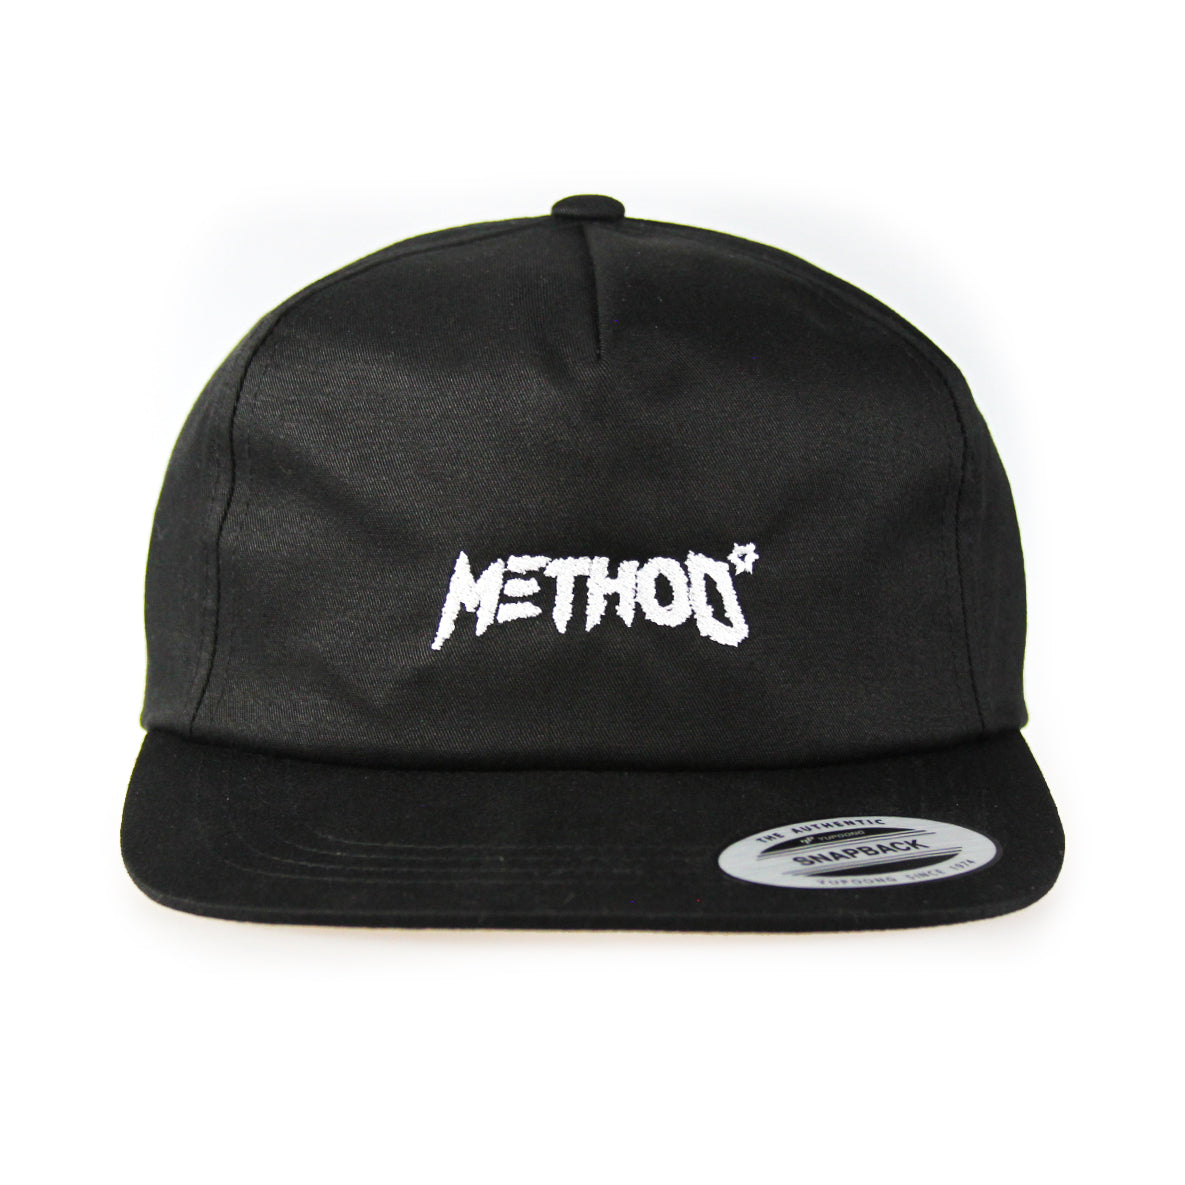 Method Unstructured 5 Panel Snapback Cap